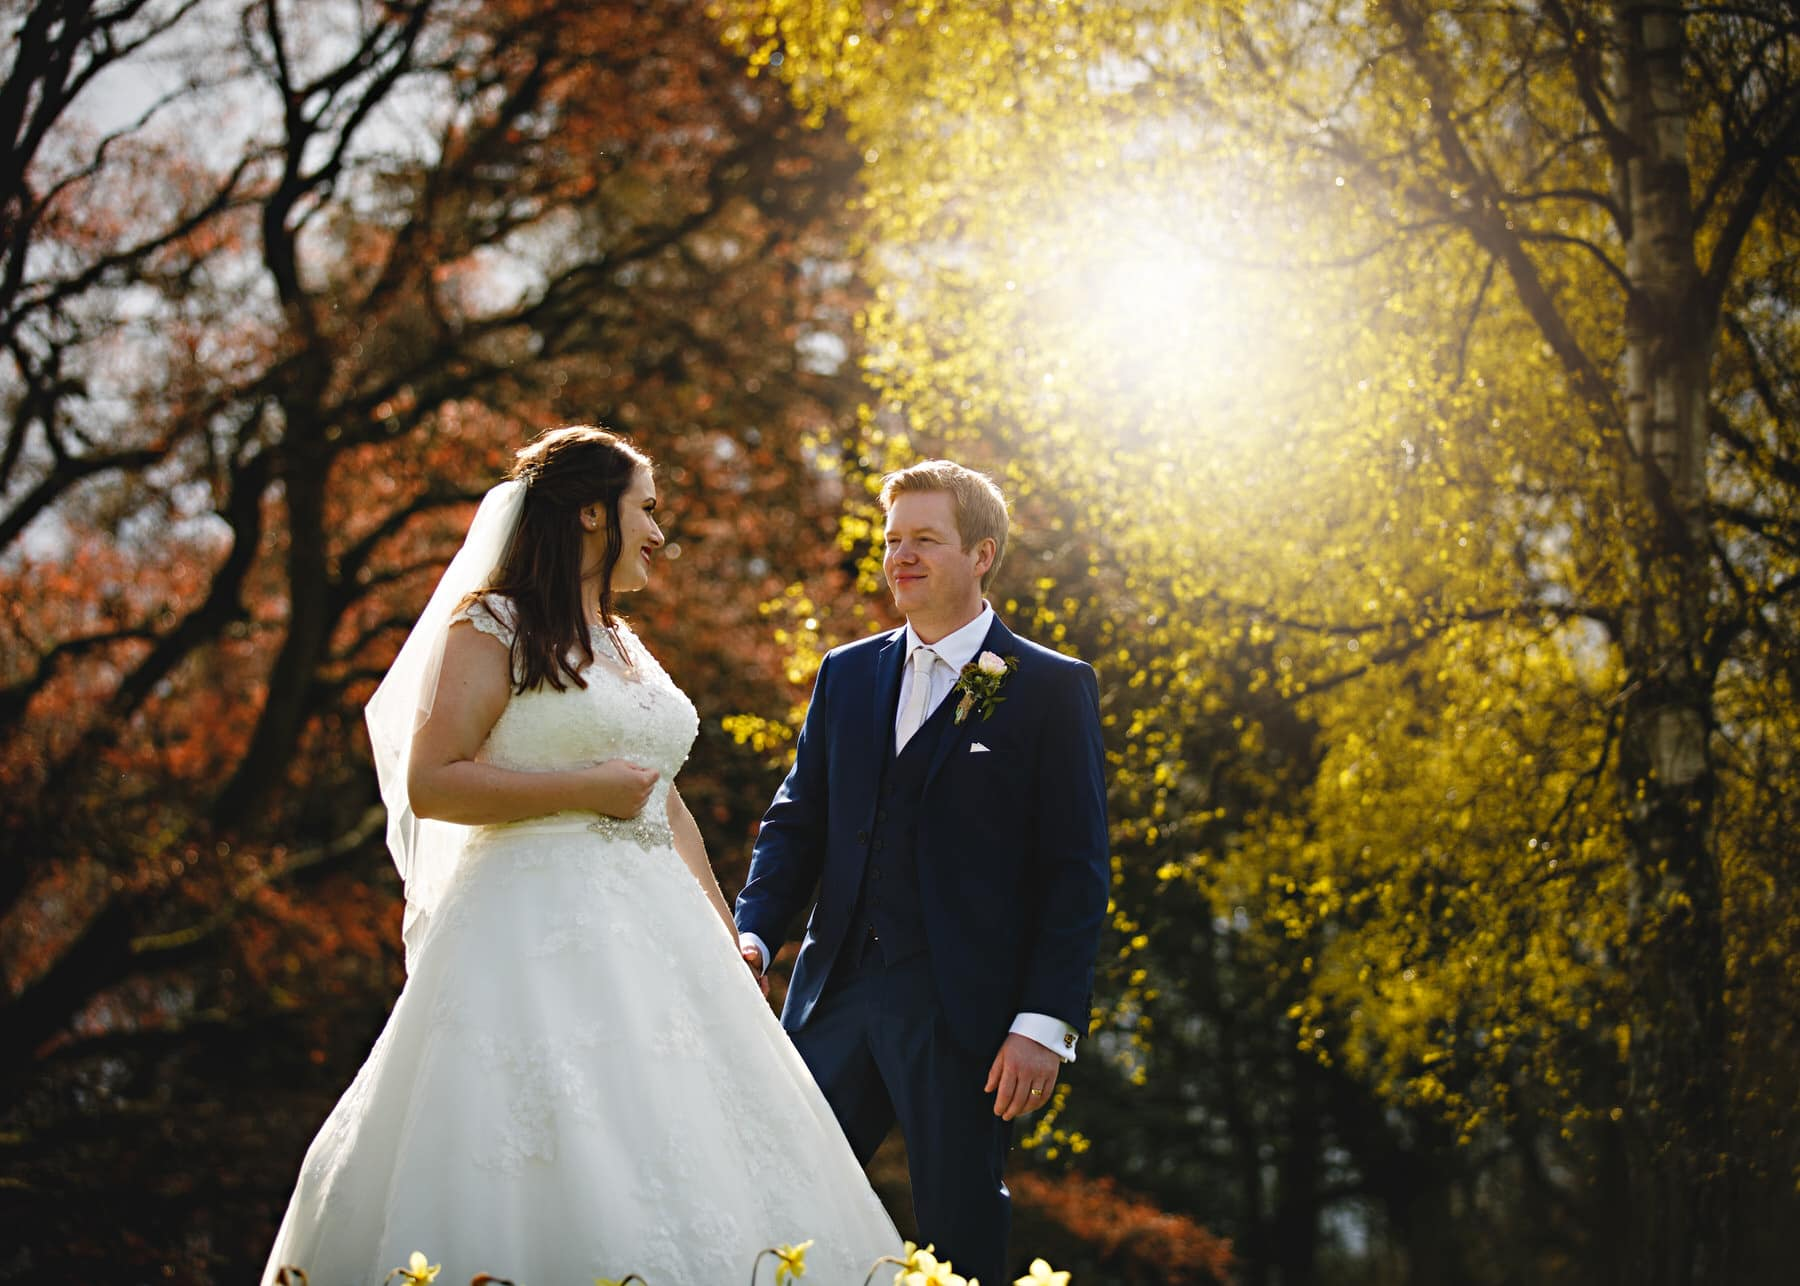 bride and groom in the autumn sun Osmaston Park in Derbyshire